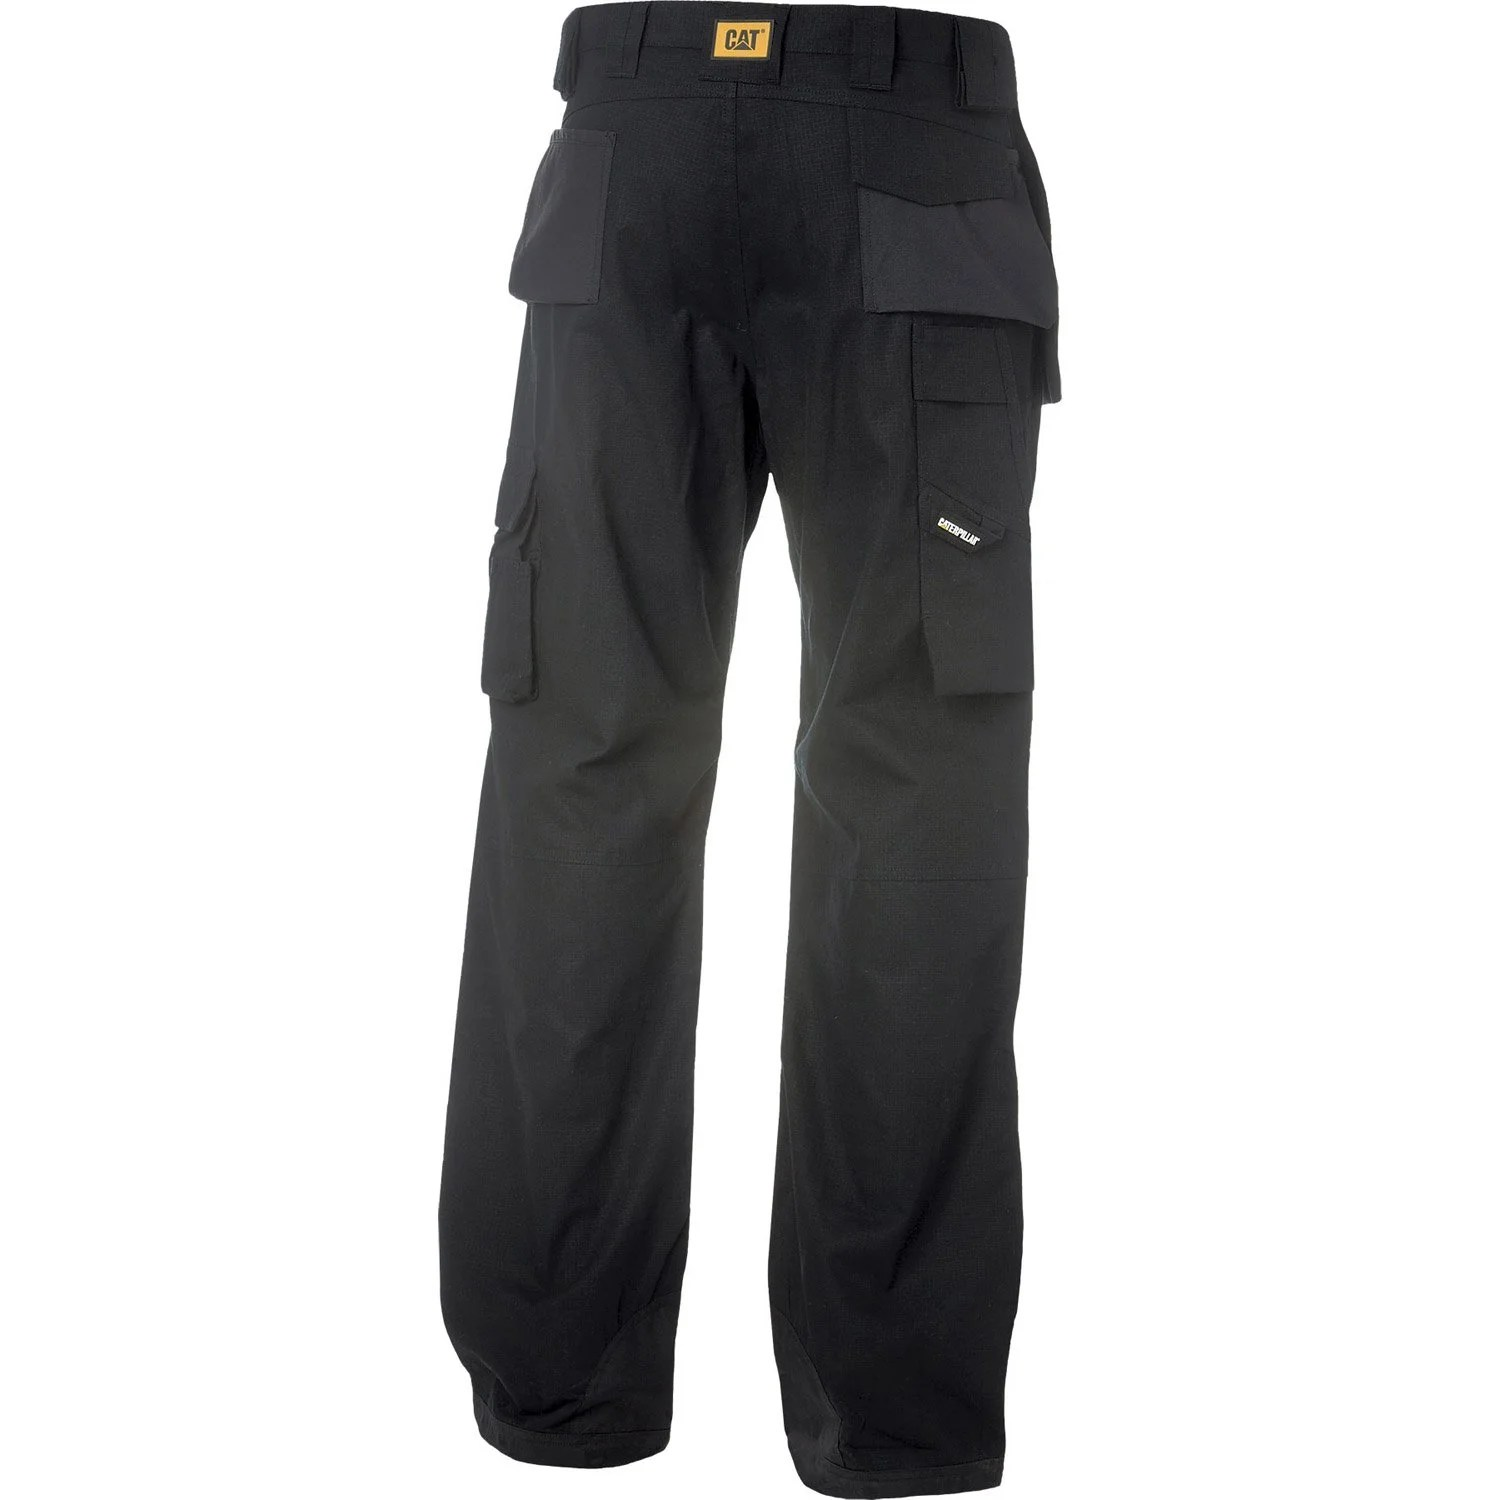 Pantalon Peintre Leroy Merlin Pantalon De Travail Multipoche Caterpillar Dl Trouser